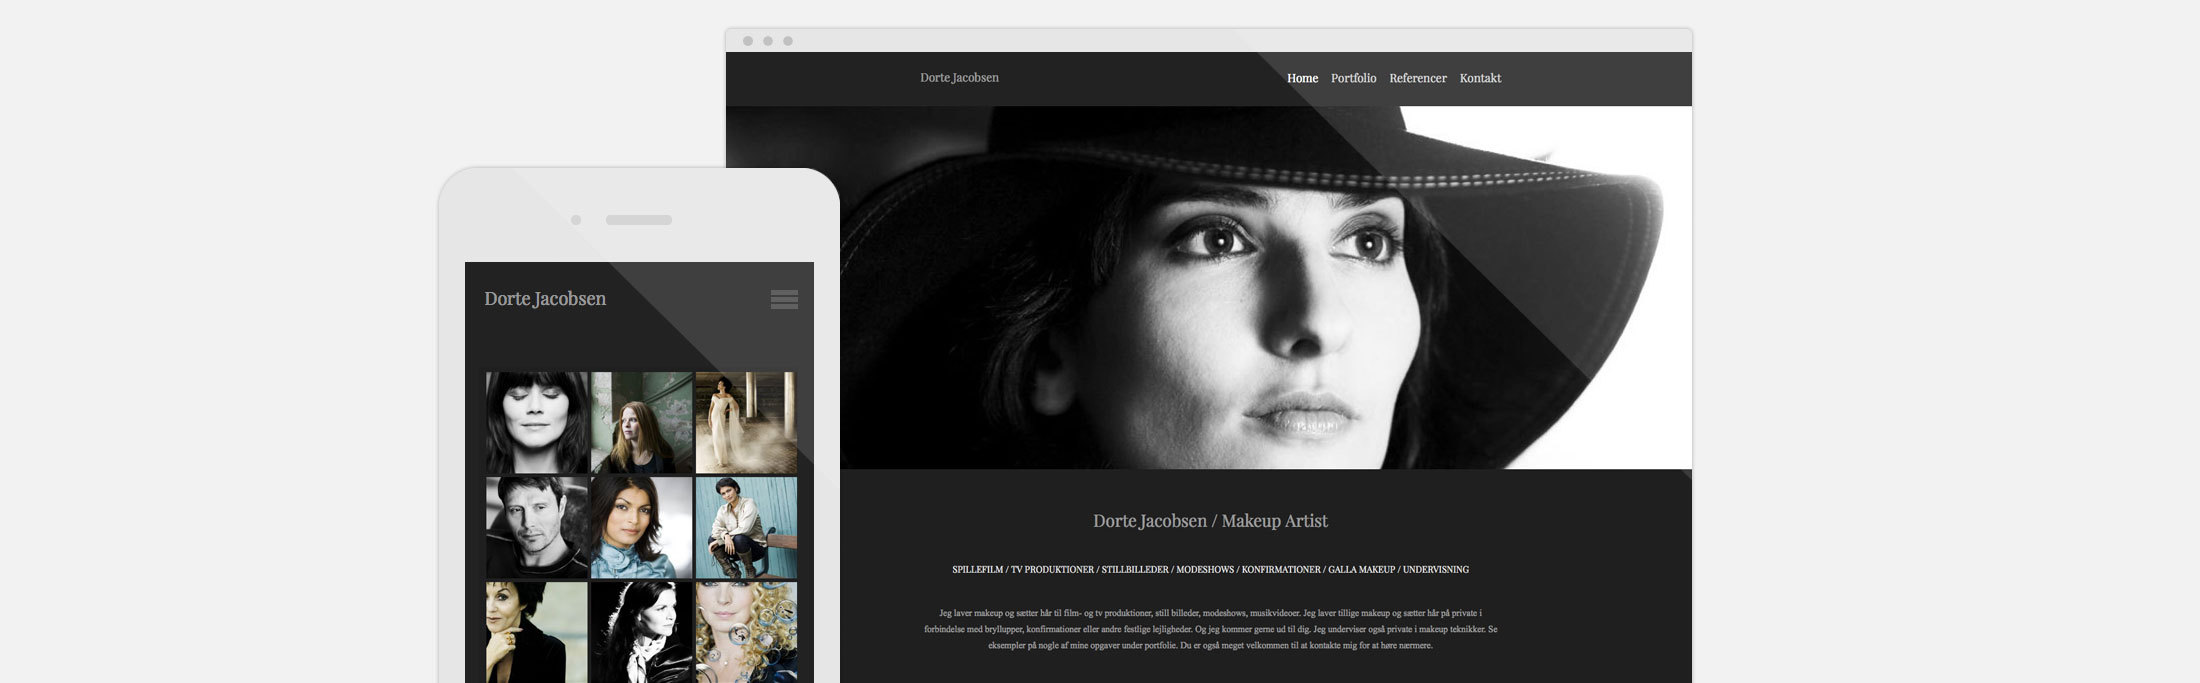 Dorte Jacobsen, best website builder, SMB, website, photography